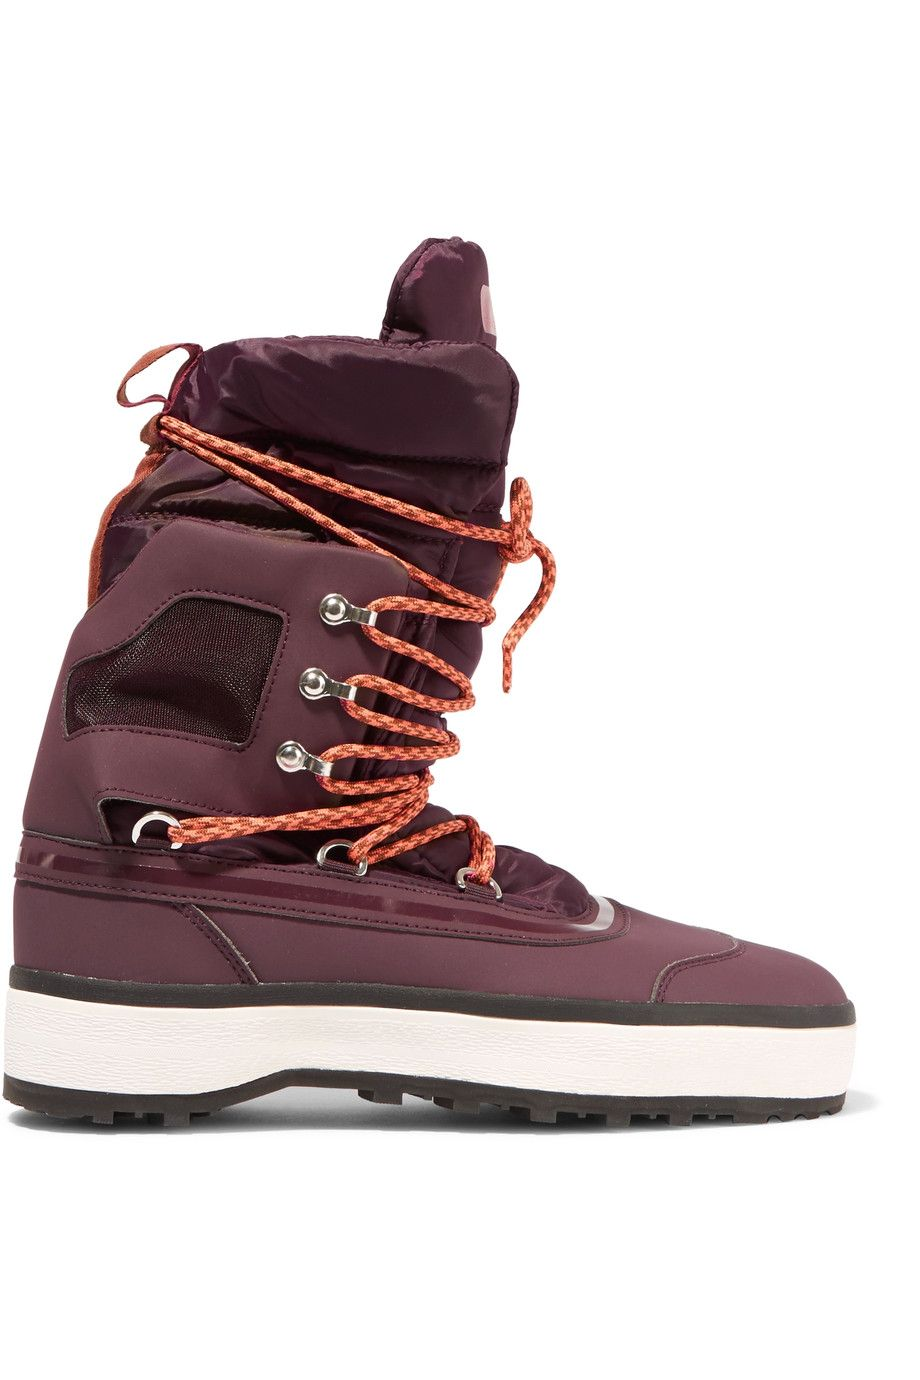 ADIDAS BY STELLA MCCARTNEY Nangator Rubber And Quilted Shell Boots ... : adidas quilted boots - Adamdwight.com